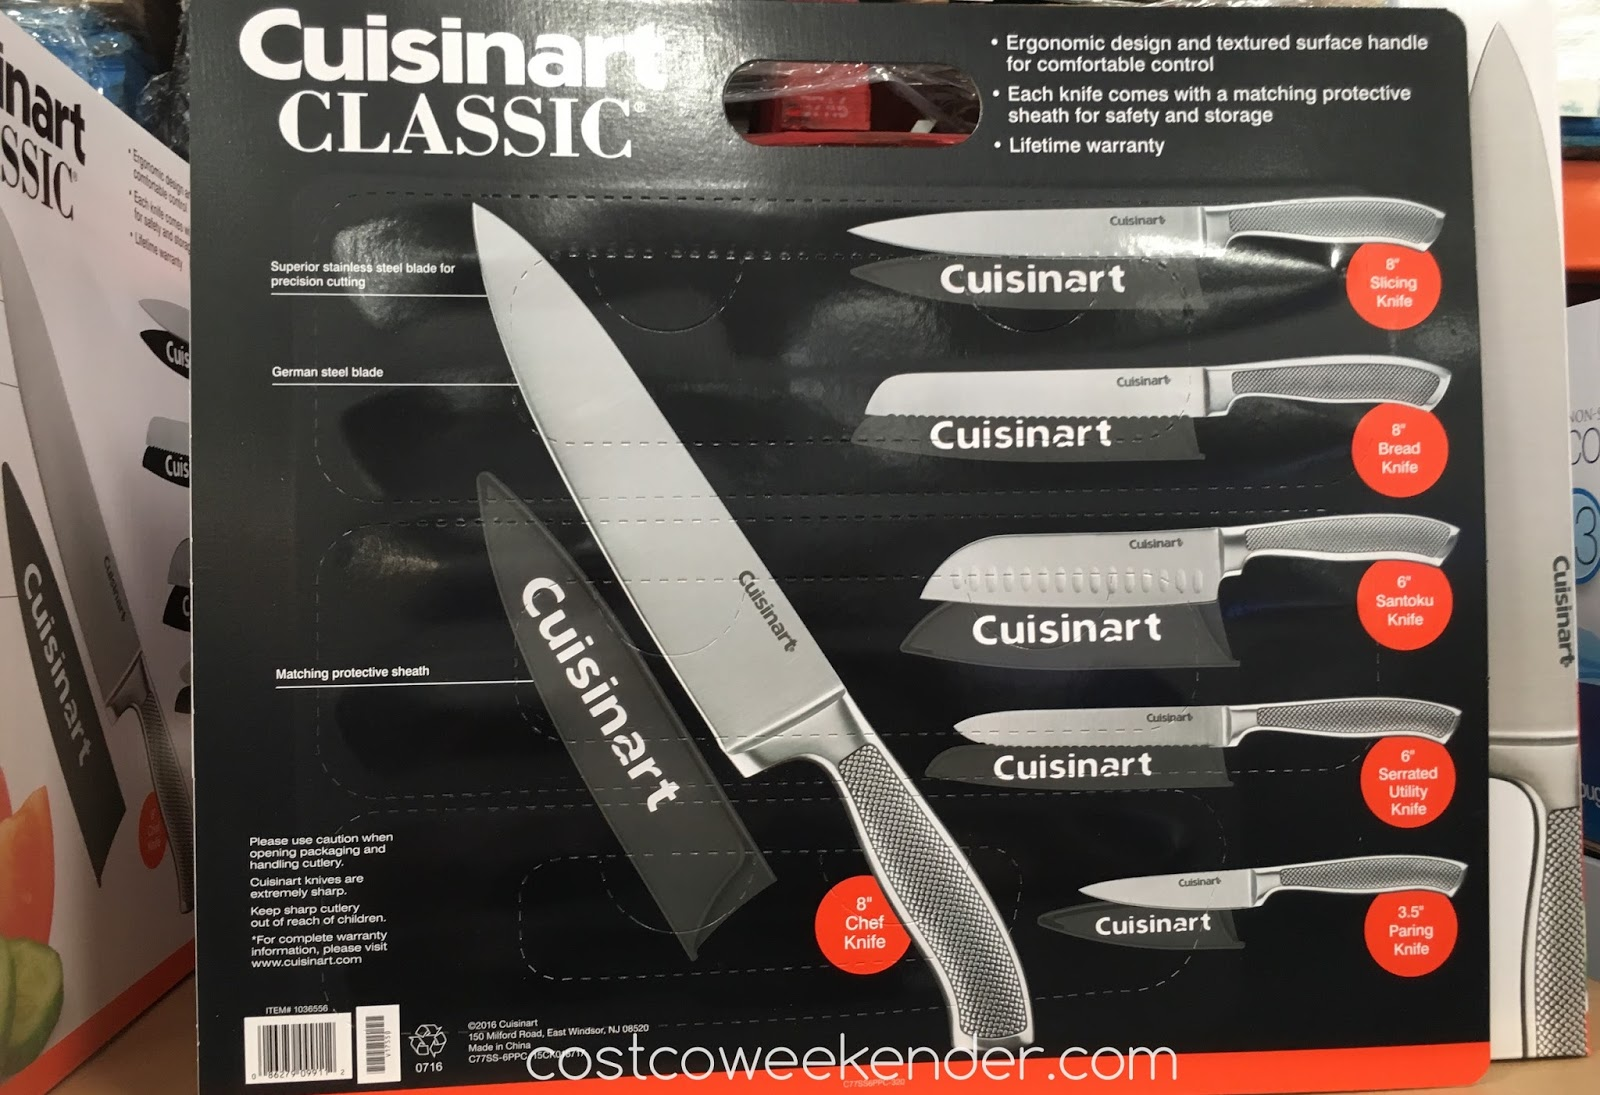 Costco 1036556 - Cuisinart Graphix 6-piece Knife Cutlery Set - great for home cook